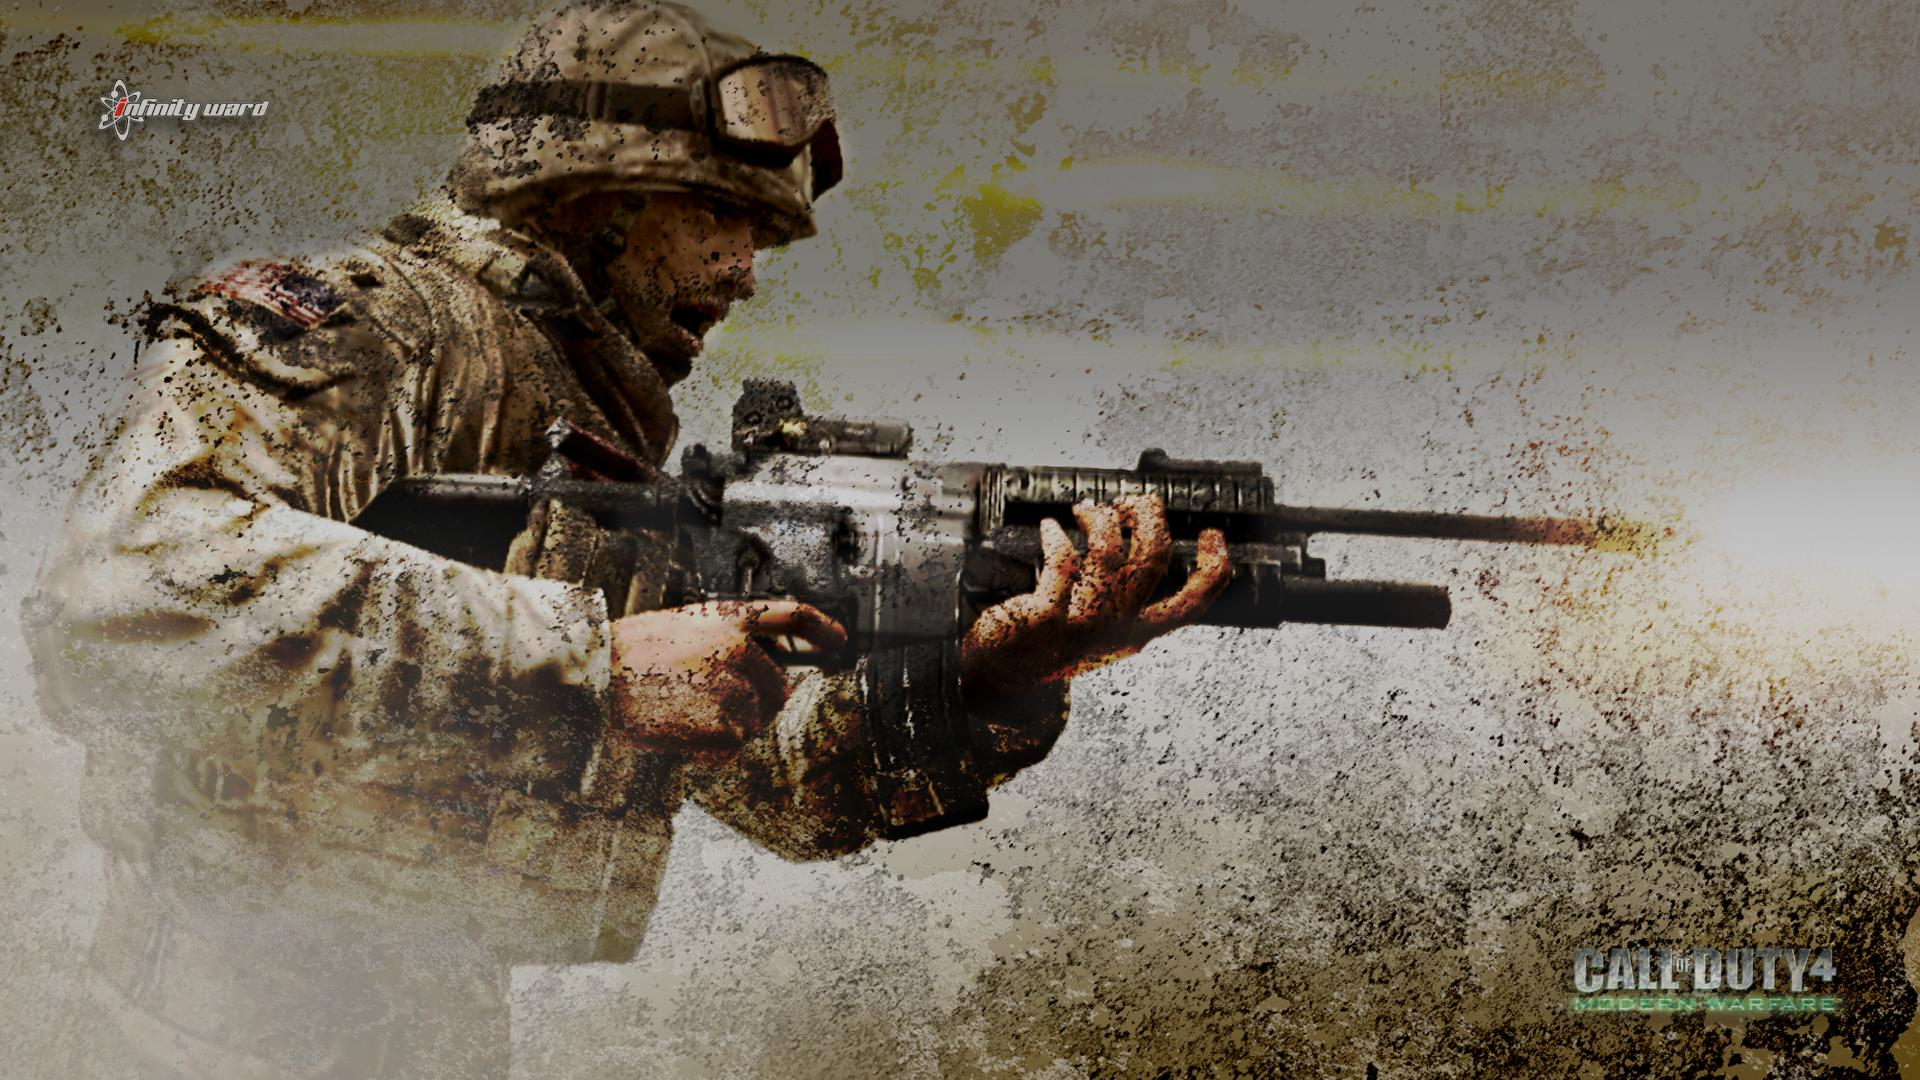 fonds d'écran call de duty : tous les wallpapers call de duty